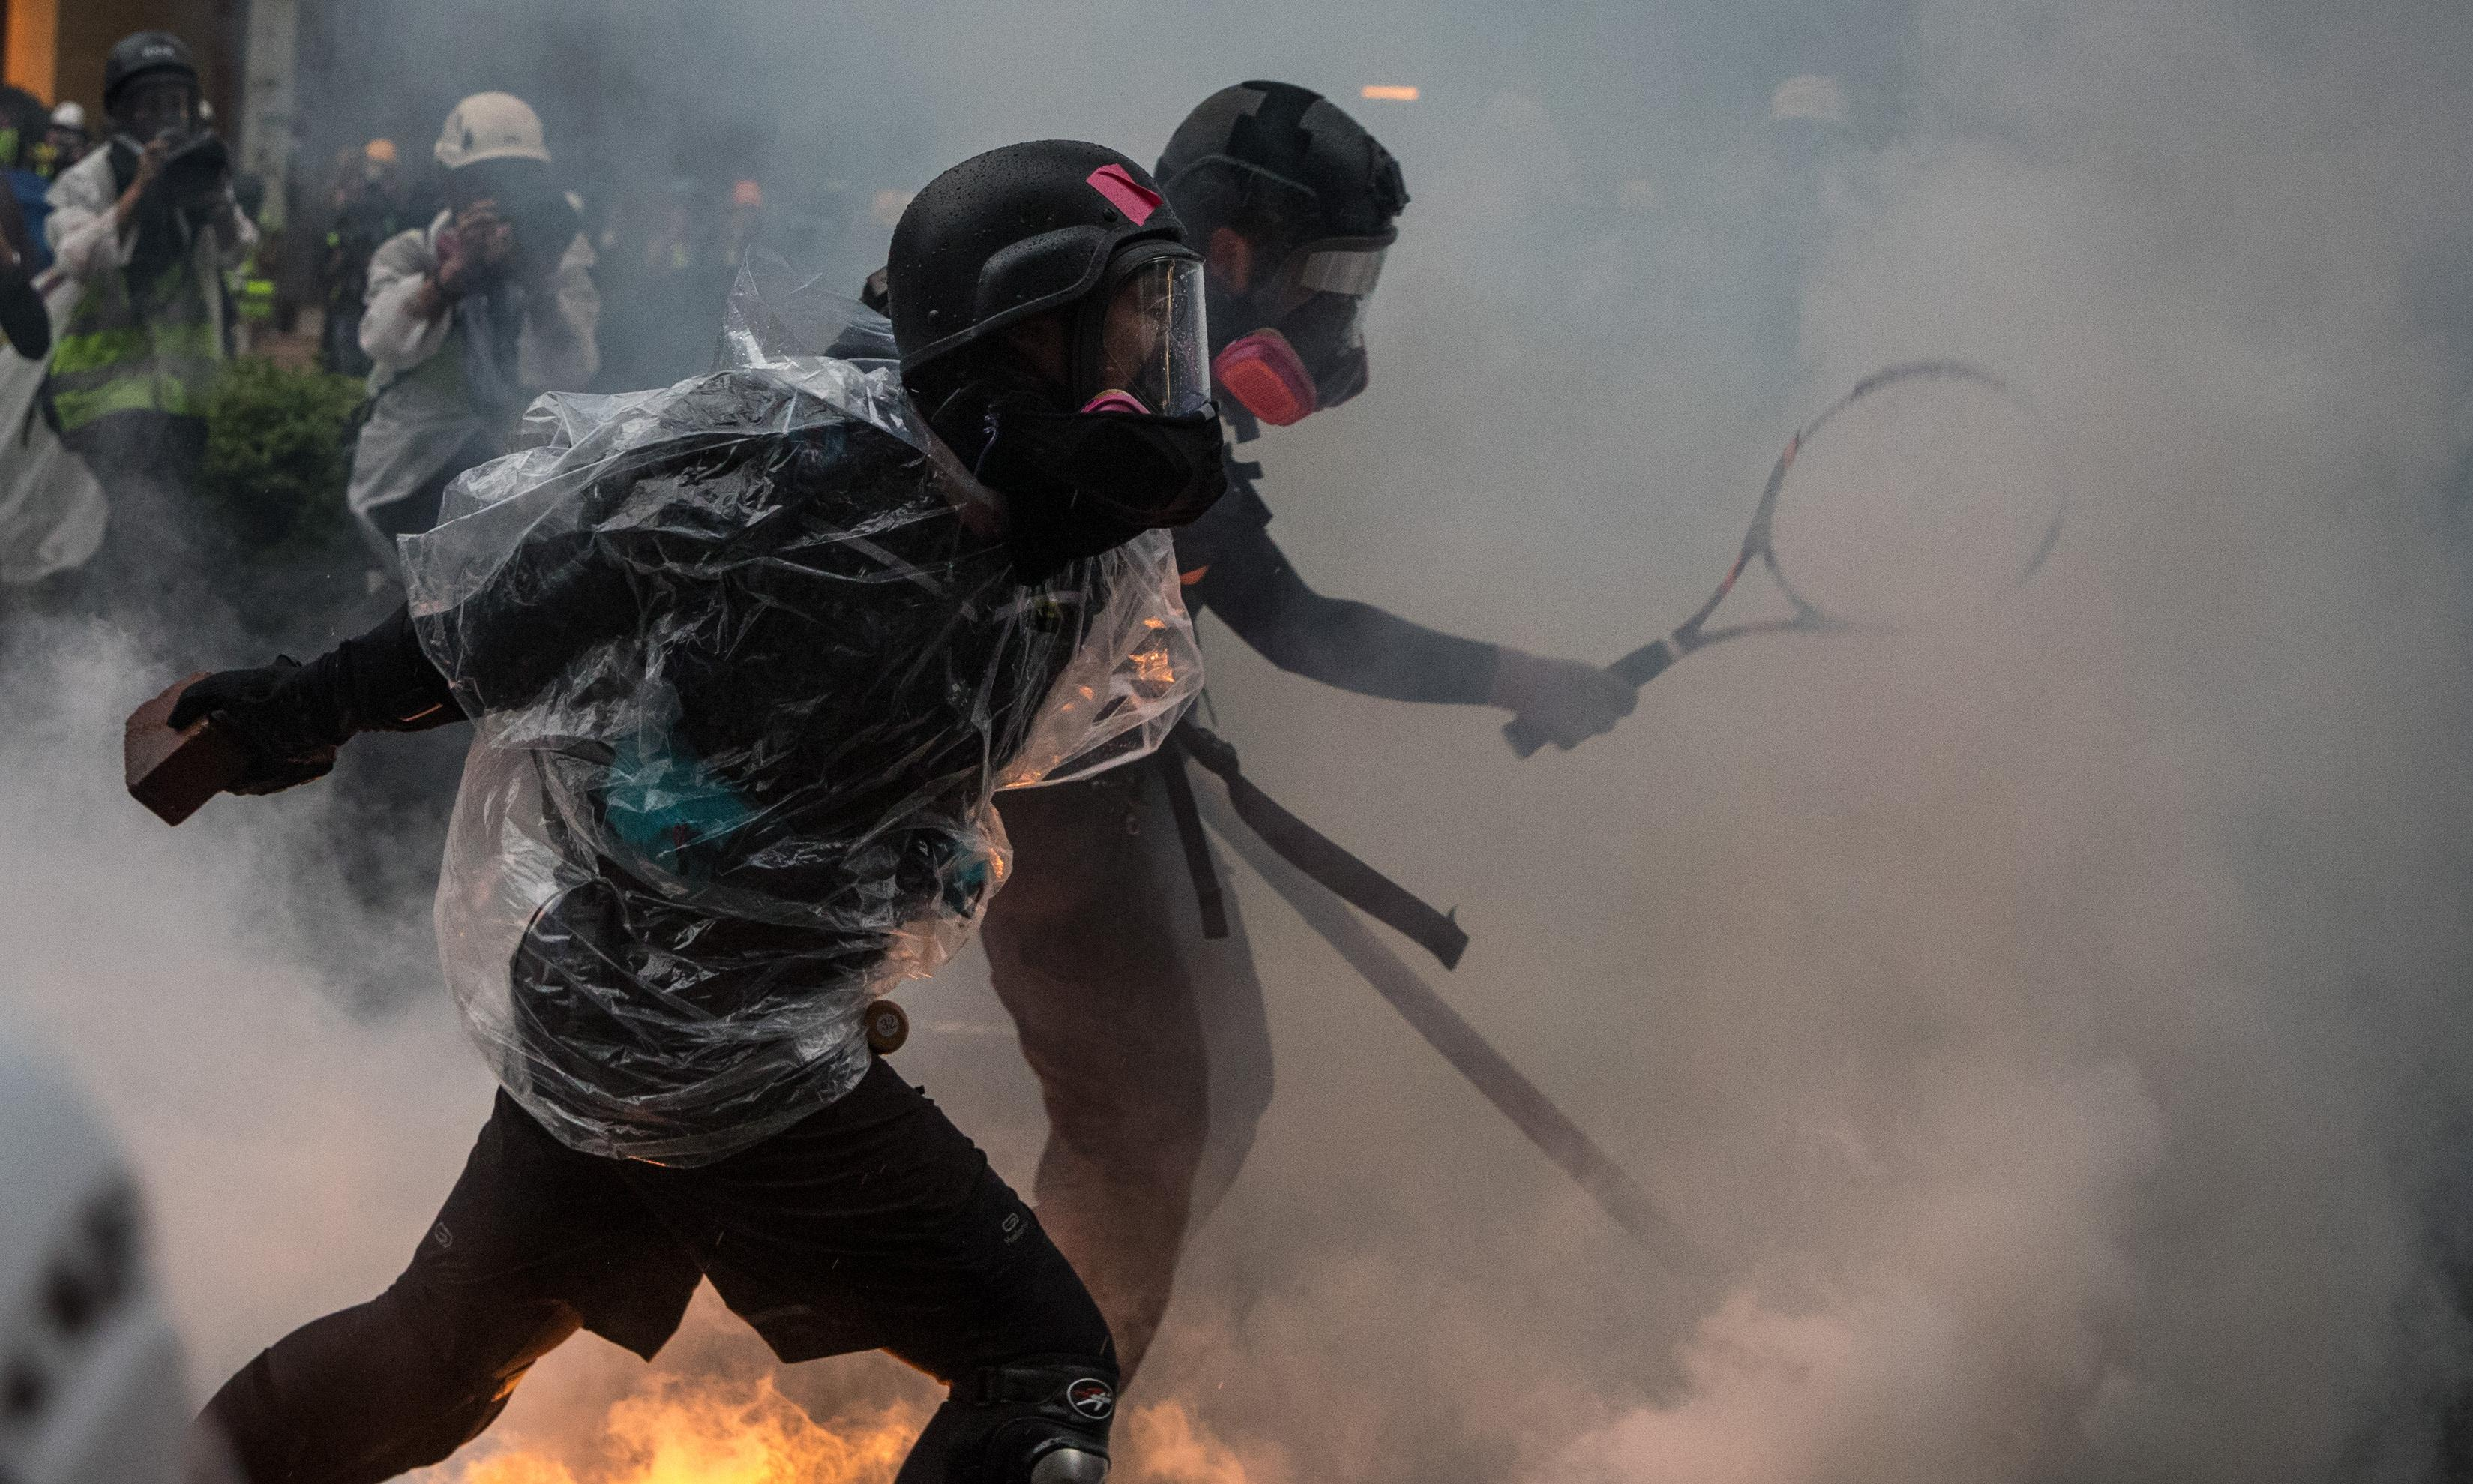 Hong Kong police defend firing live round during latest protests